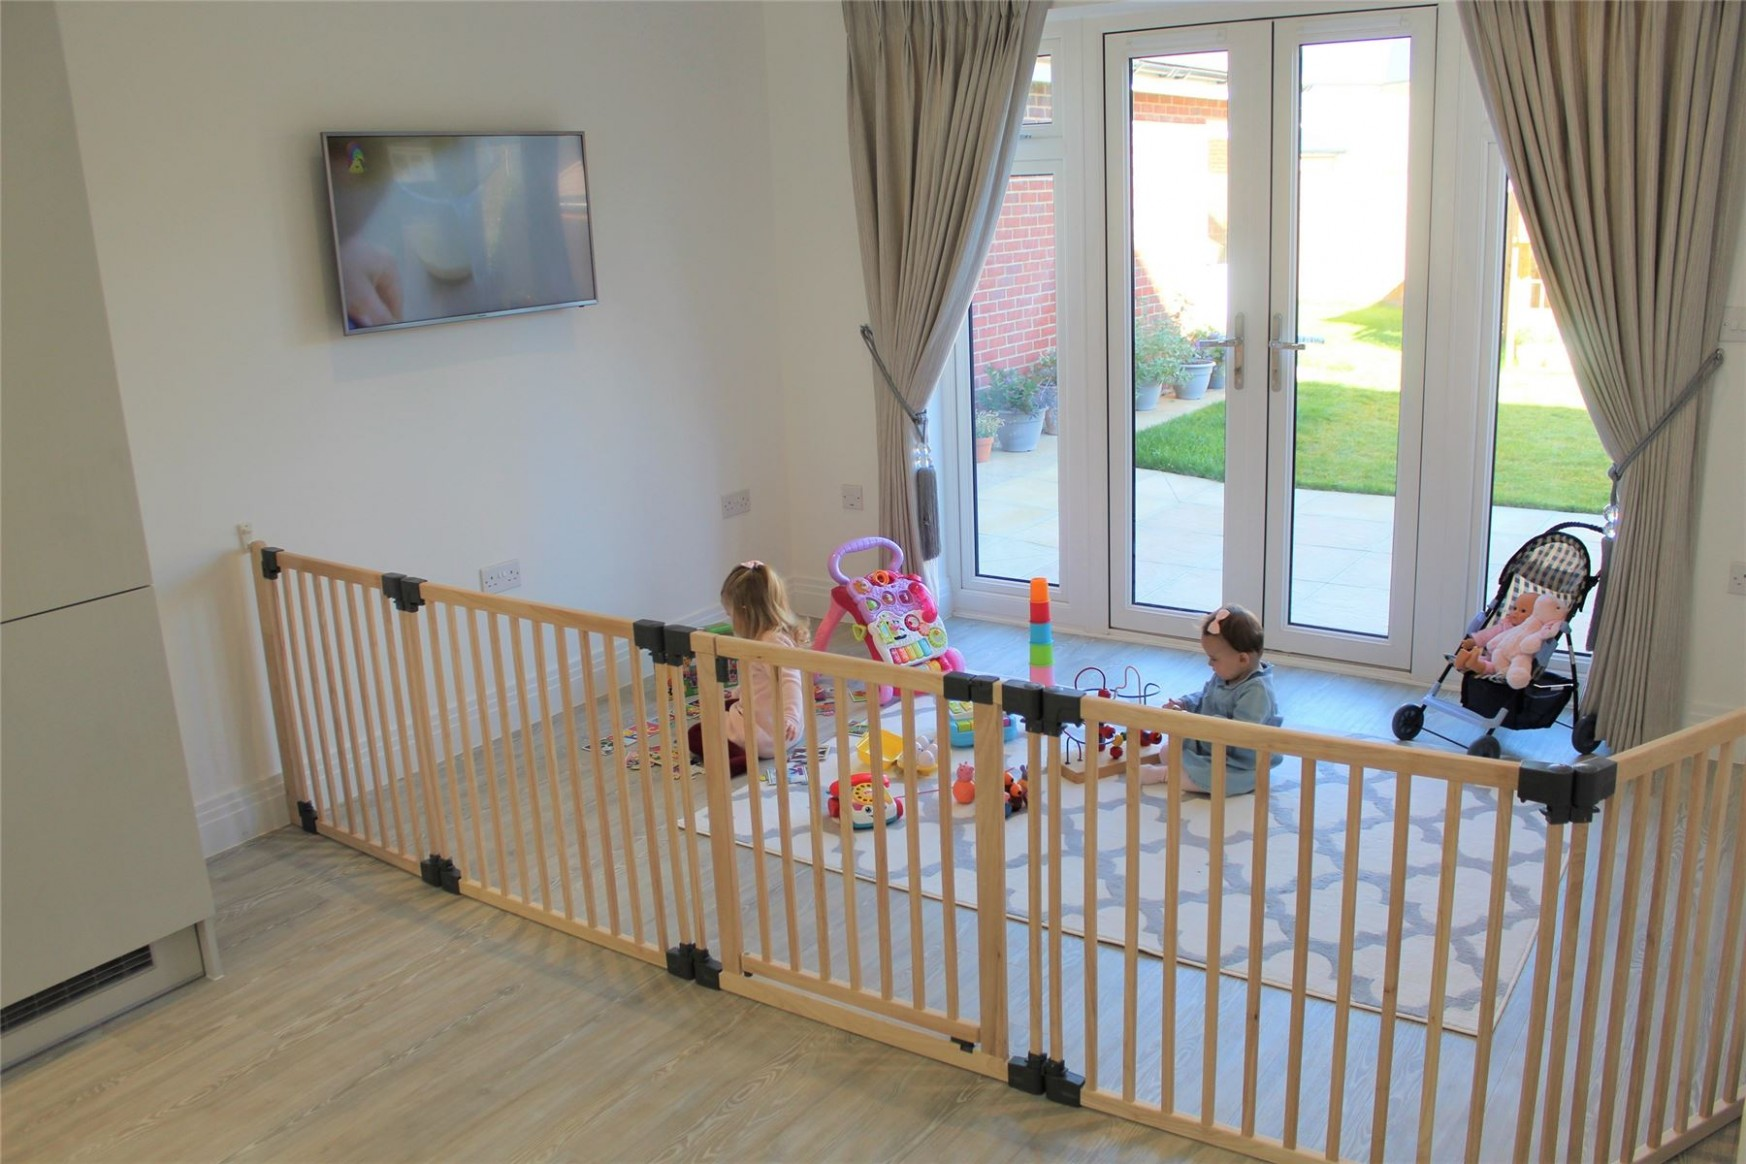 Details about Safetots Premium Wooden Multi Panel Wide Baby Safety Gate  Flexible Room Divider - Baby Room Divider